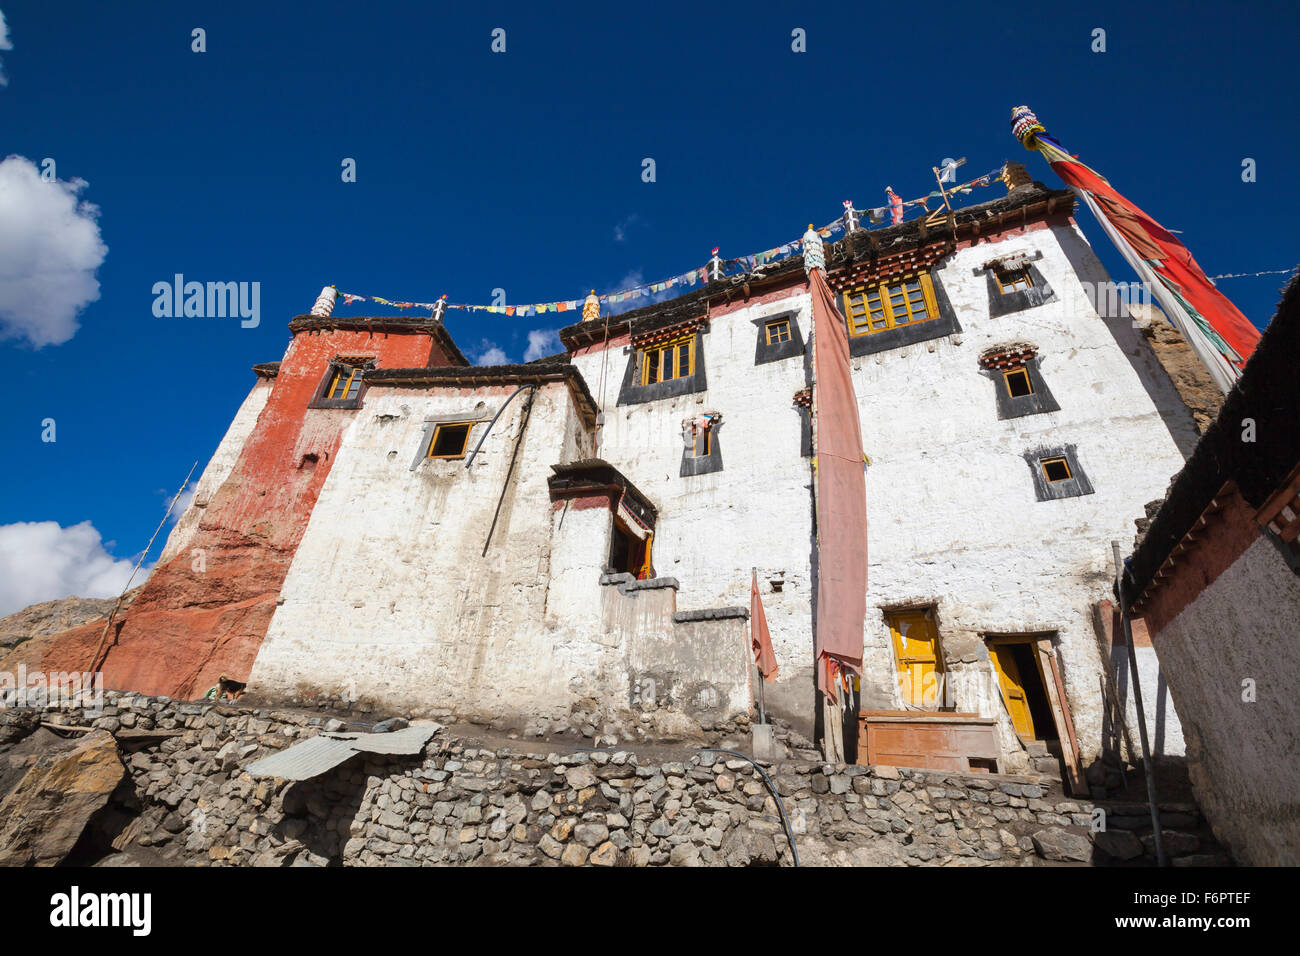 10th century Buddhist monastery at Dhankar in the Himalayan region of Himachal Pradesh, India - Stock Image